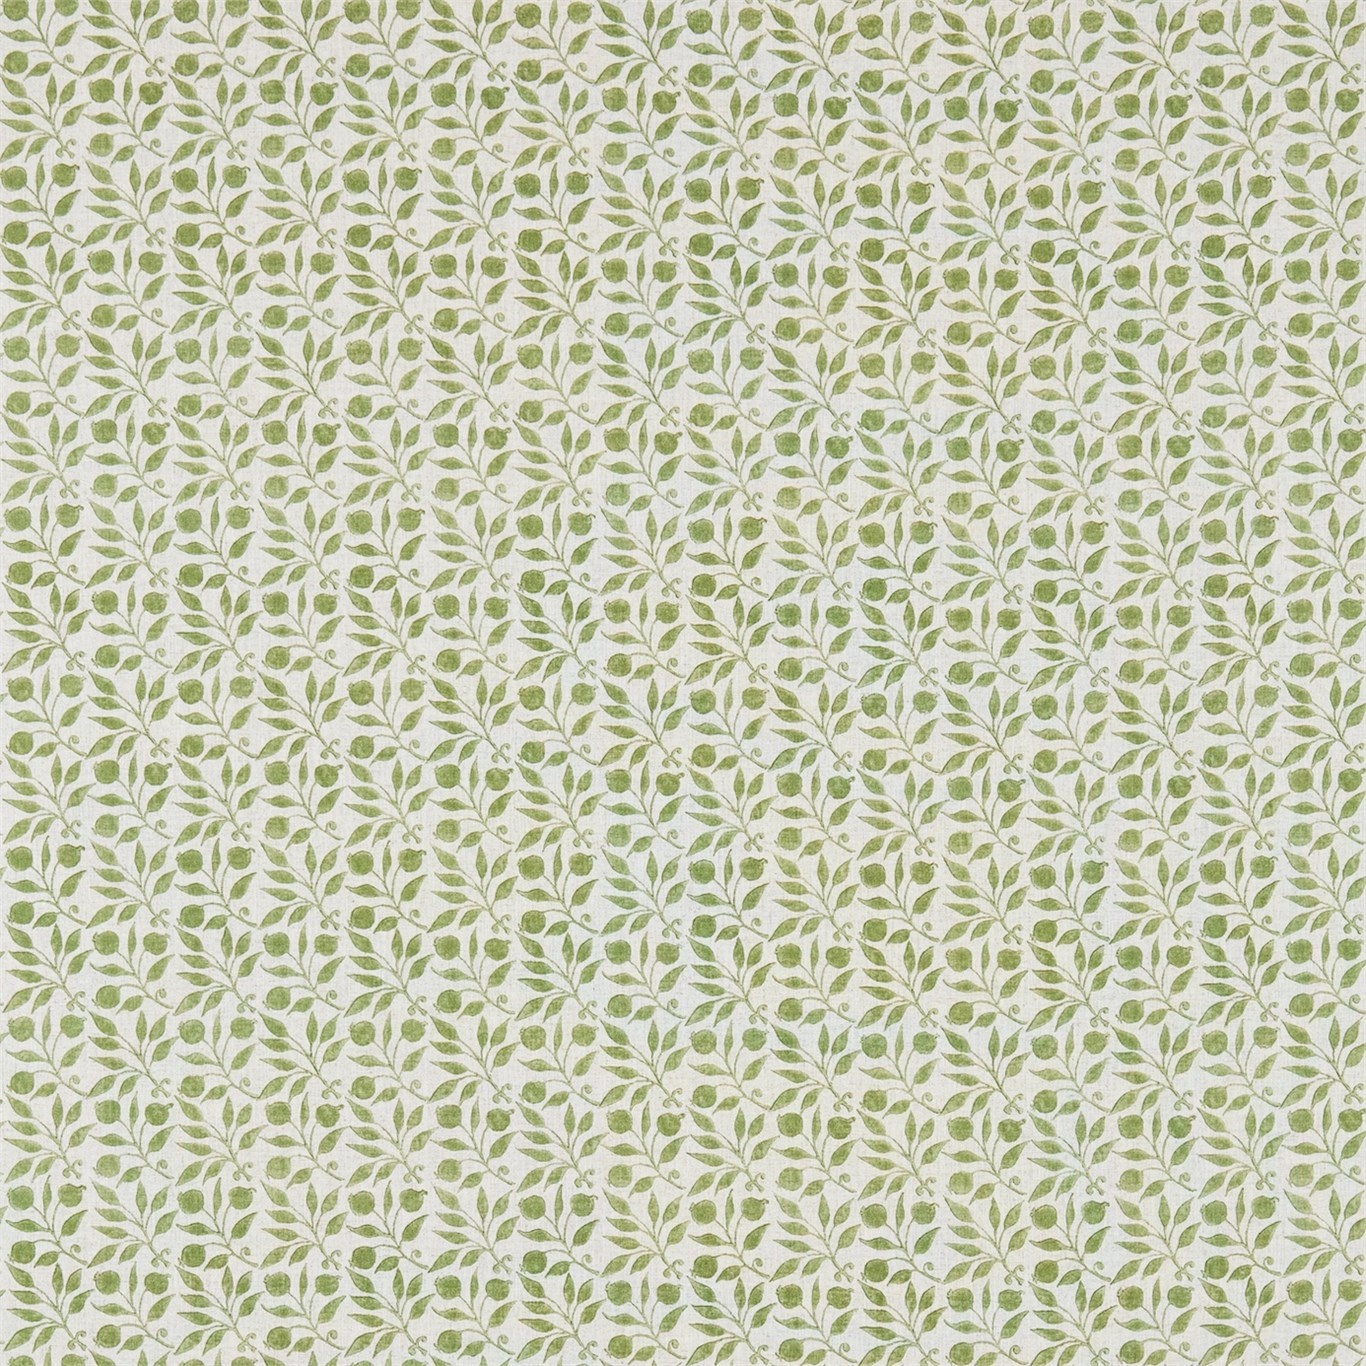 Image of Morris & Co Rosehip Thyme Curtain Fabric 224484